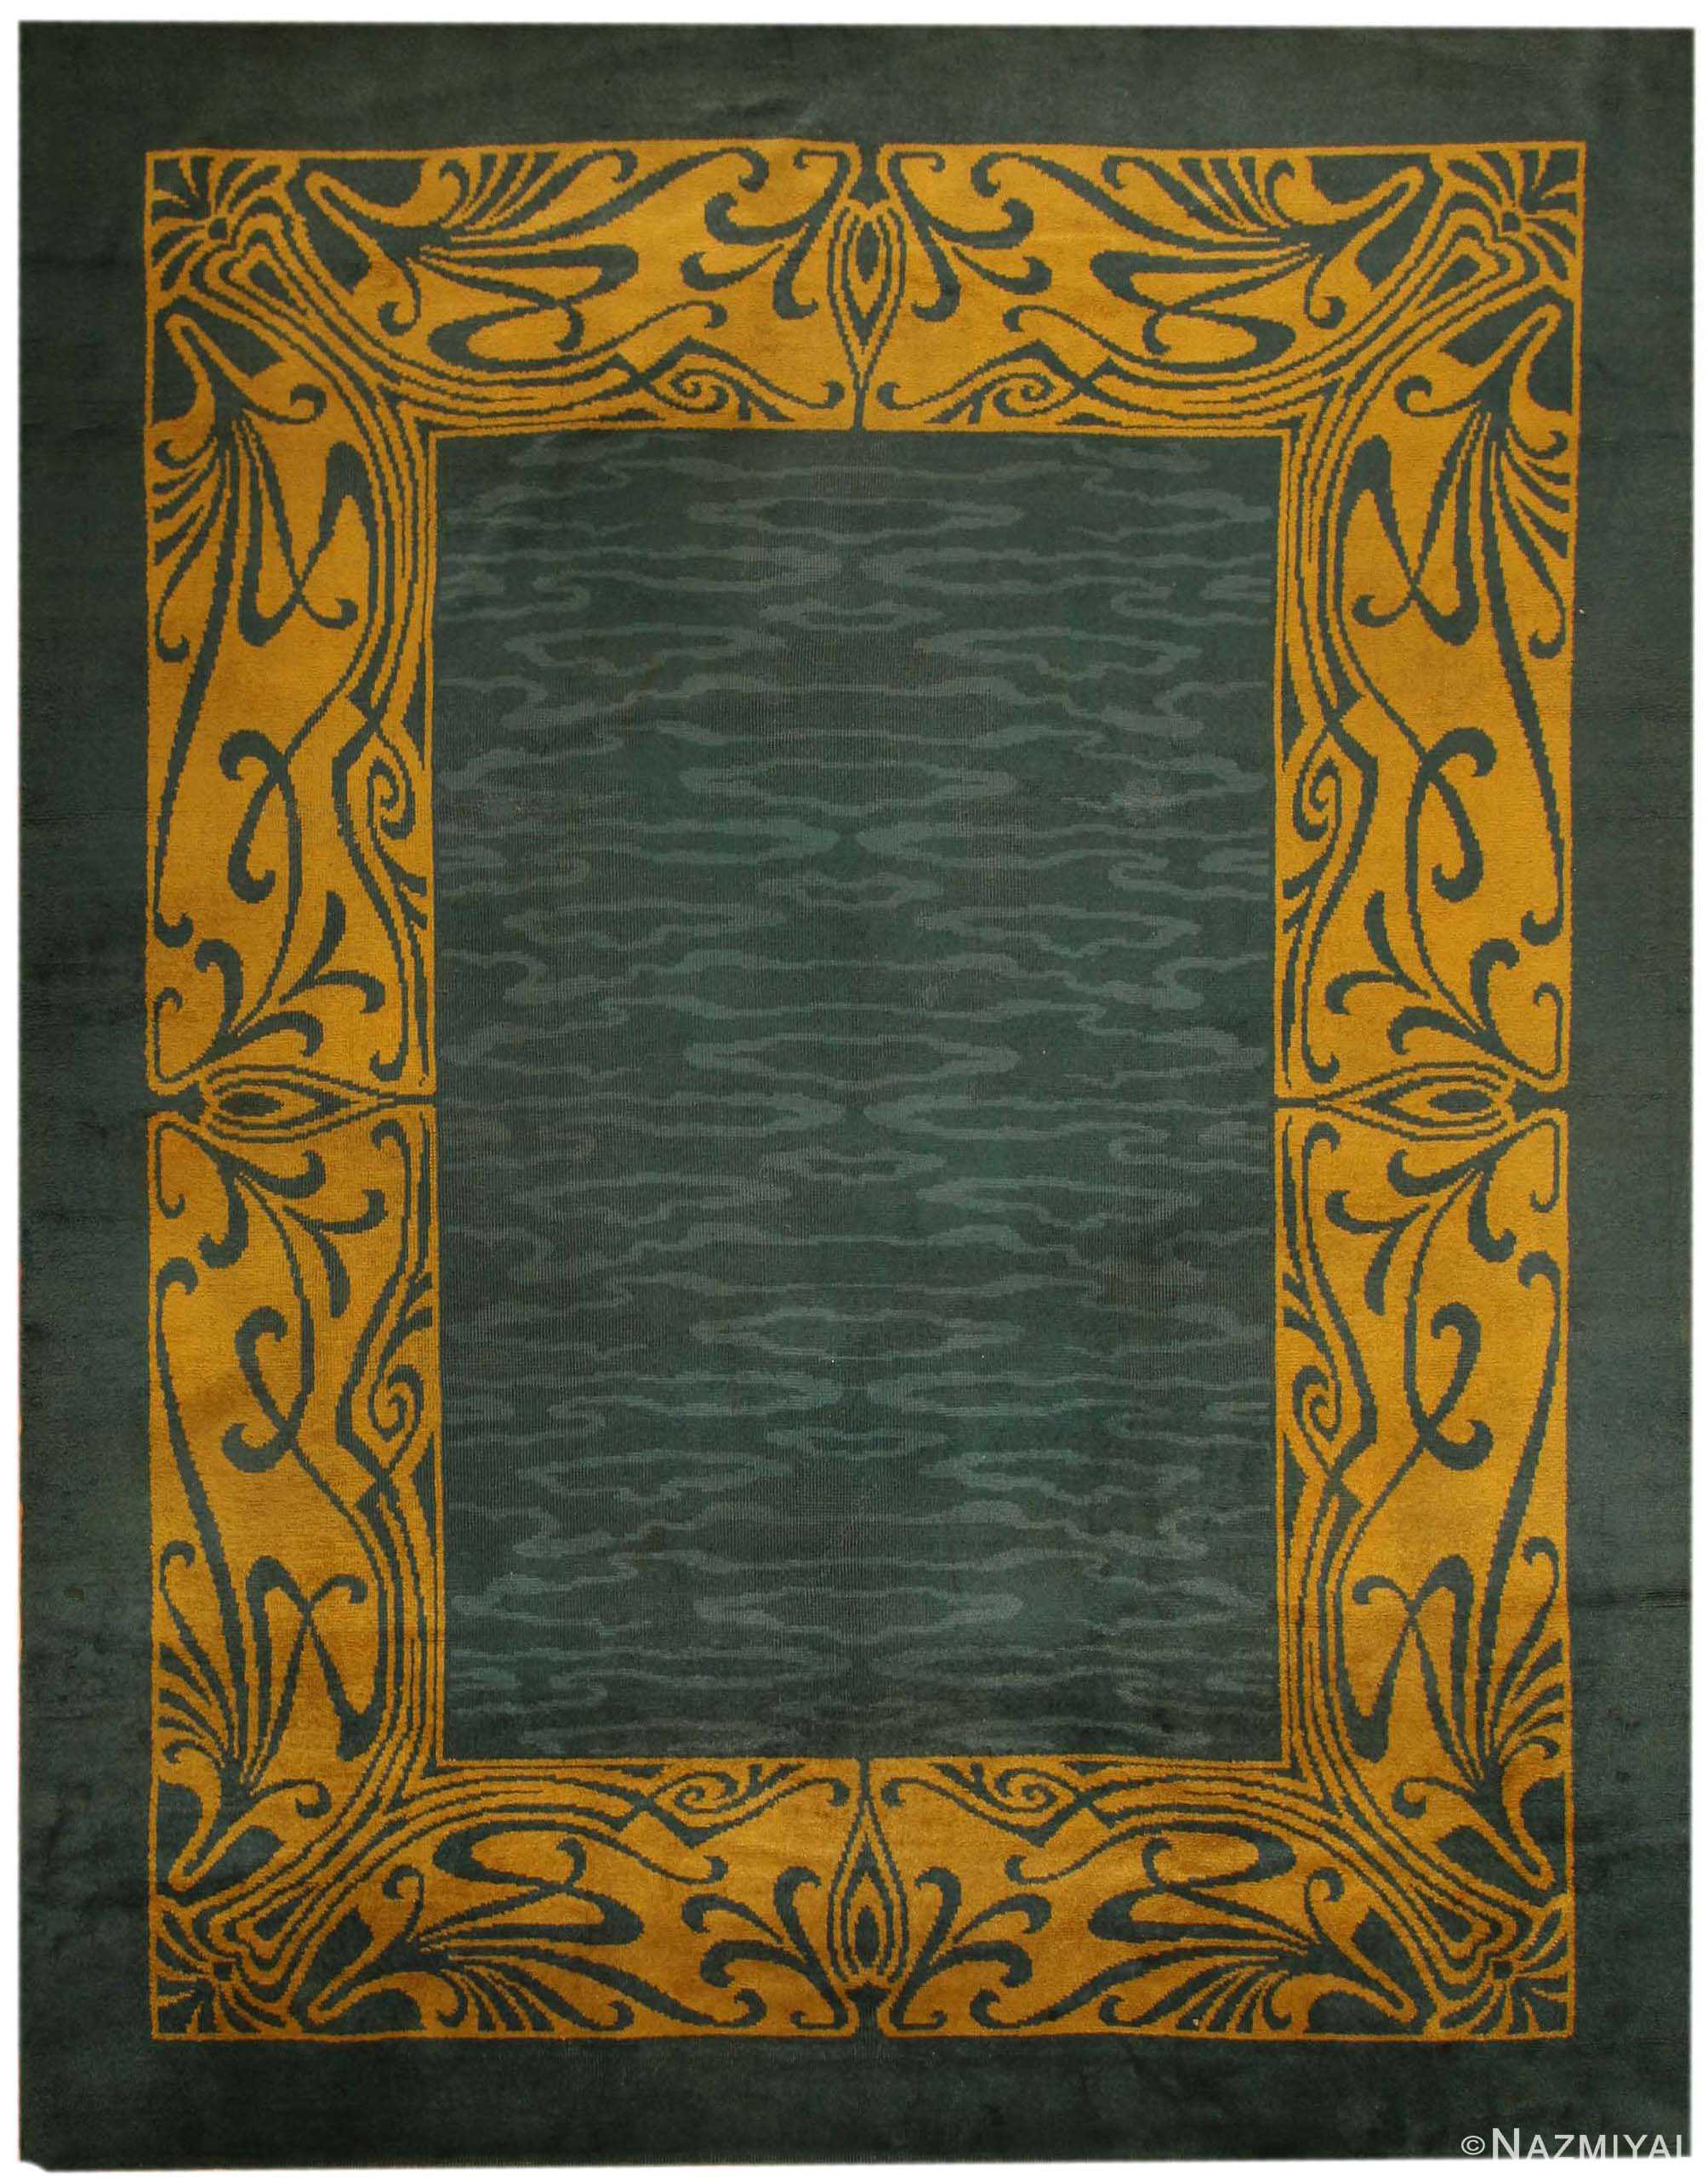 Preferred Antique Art Nouveau Irish Donegal Rug 43139 by Nazmiyal BE62